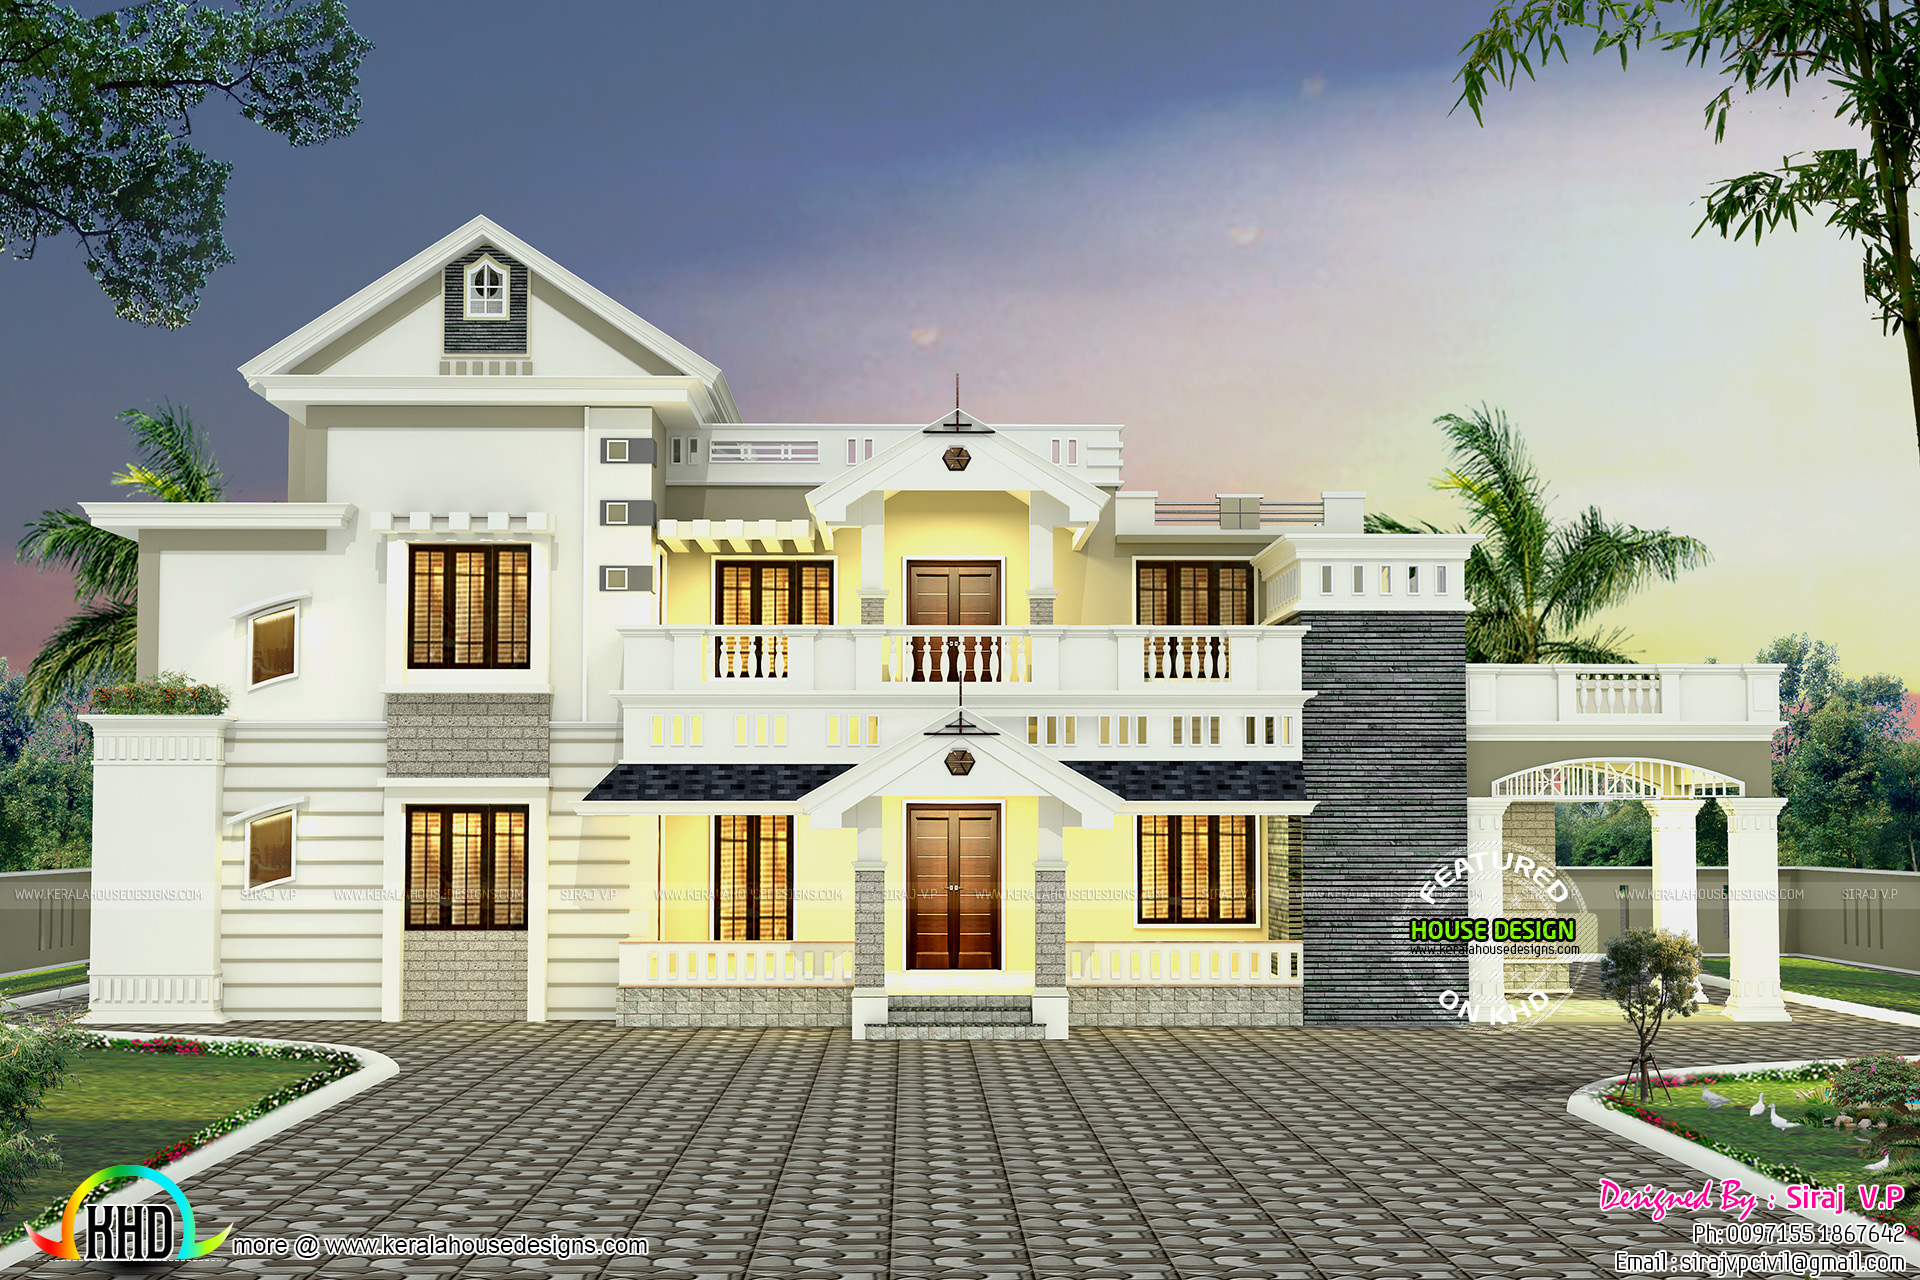 colonial mix villa 2600 sq ft kerala home design and floor plans. Black Bedroom Furniture Sets. Home Design Ideas